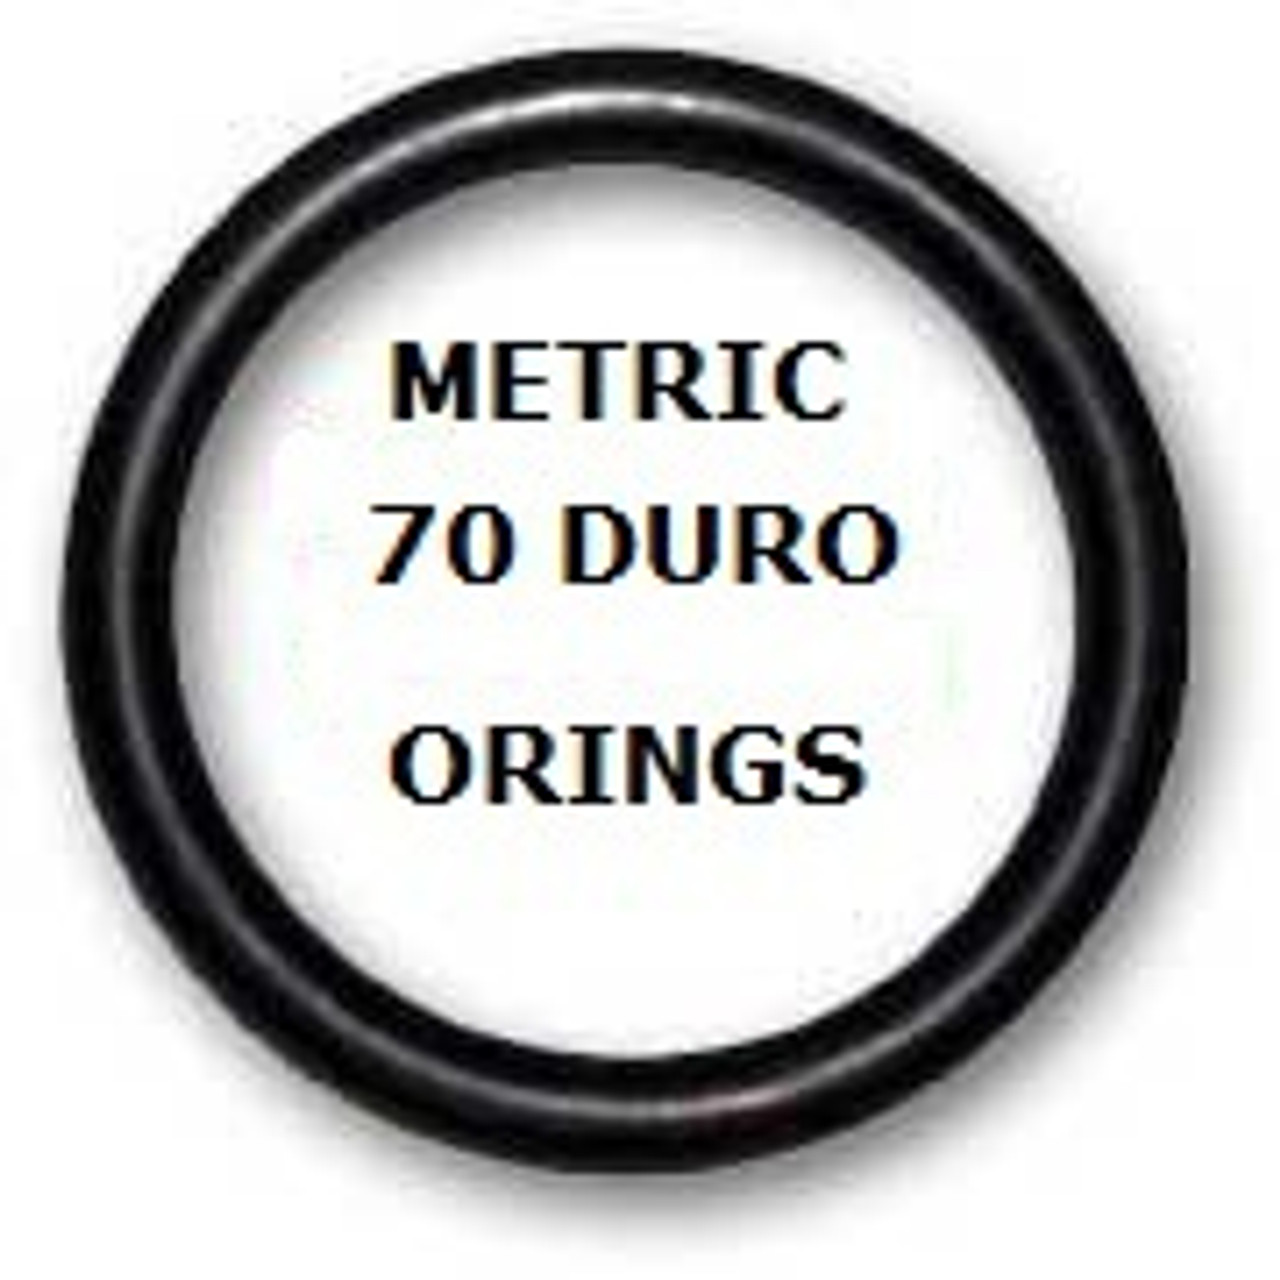 Metric Buna  O-rings 76 x 6mm Price for  1 pc